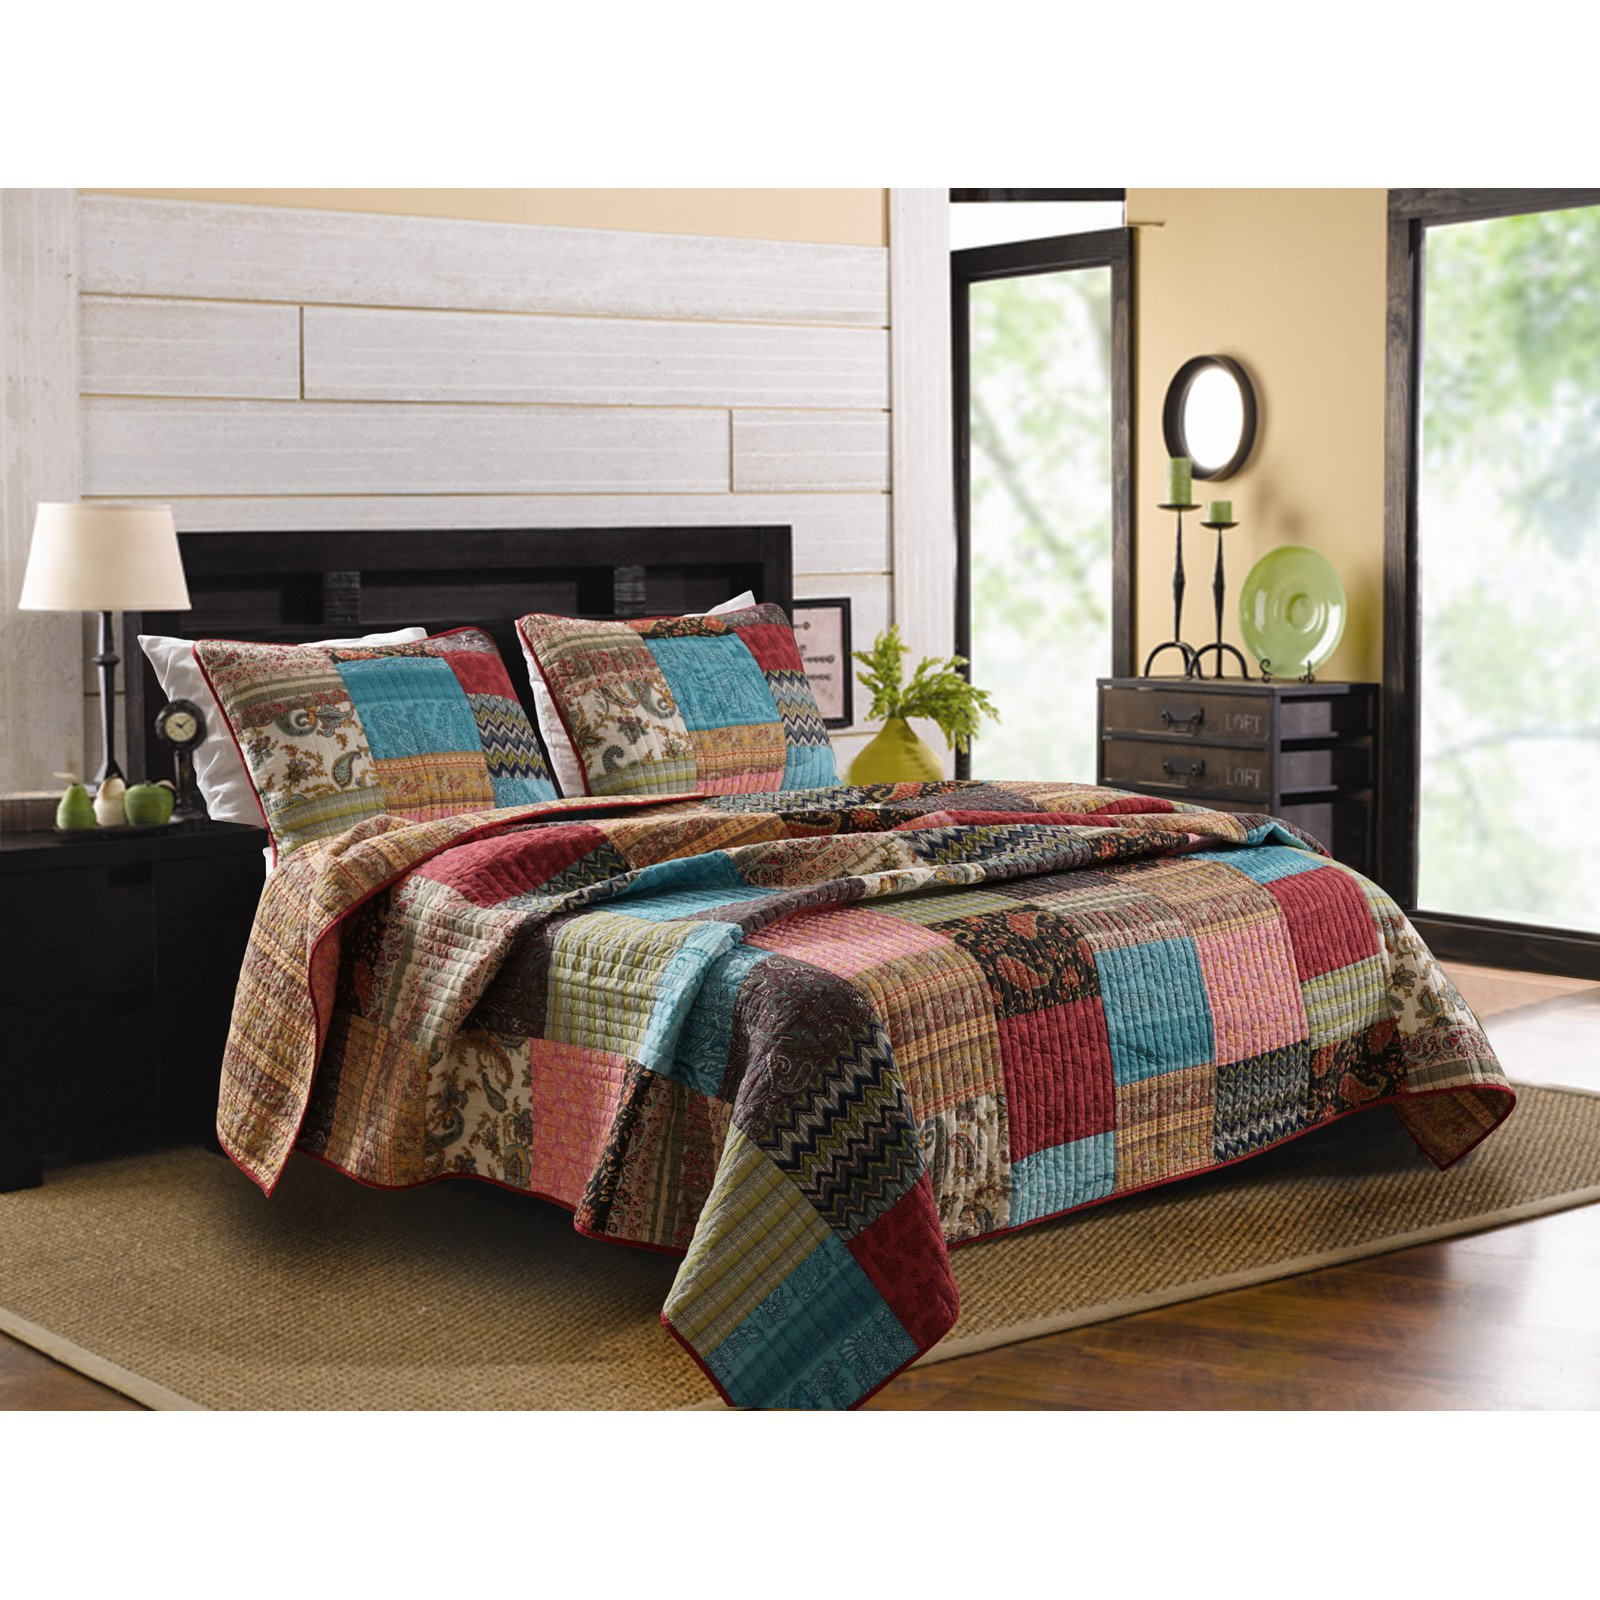 greenland home fashions new bohemian quilt set - Greenland Home Fashions